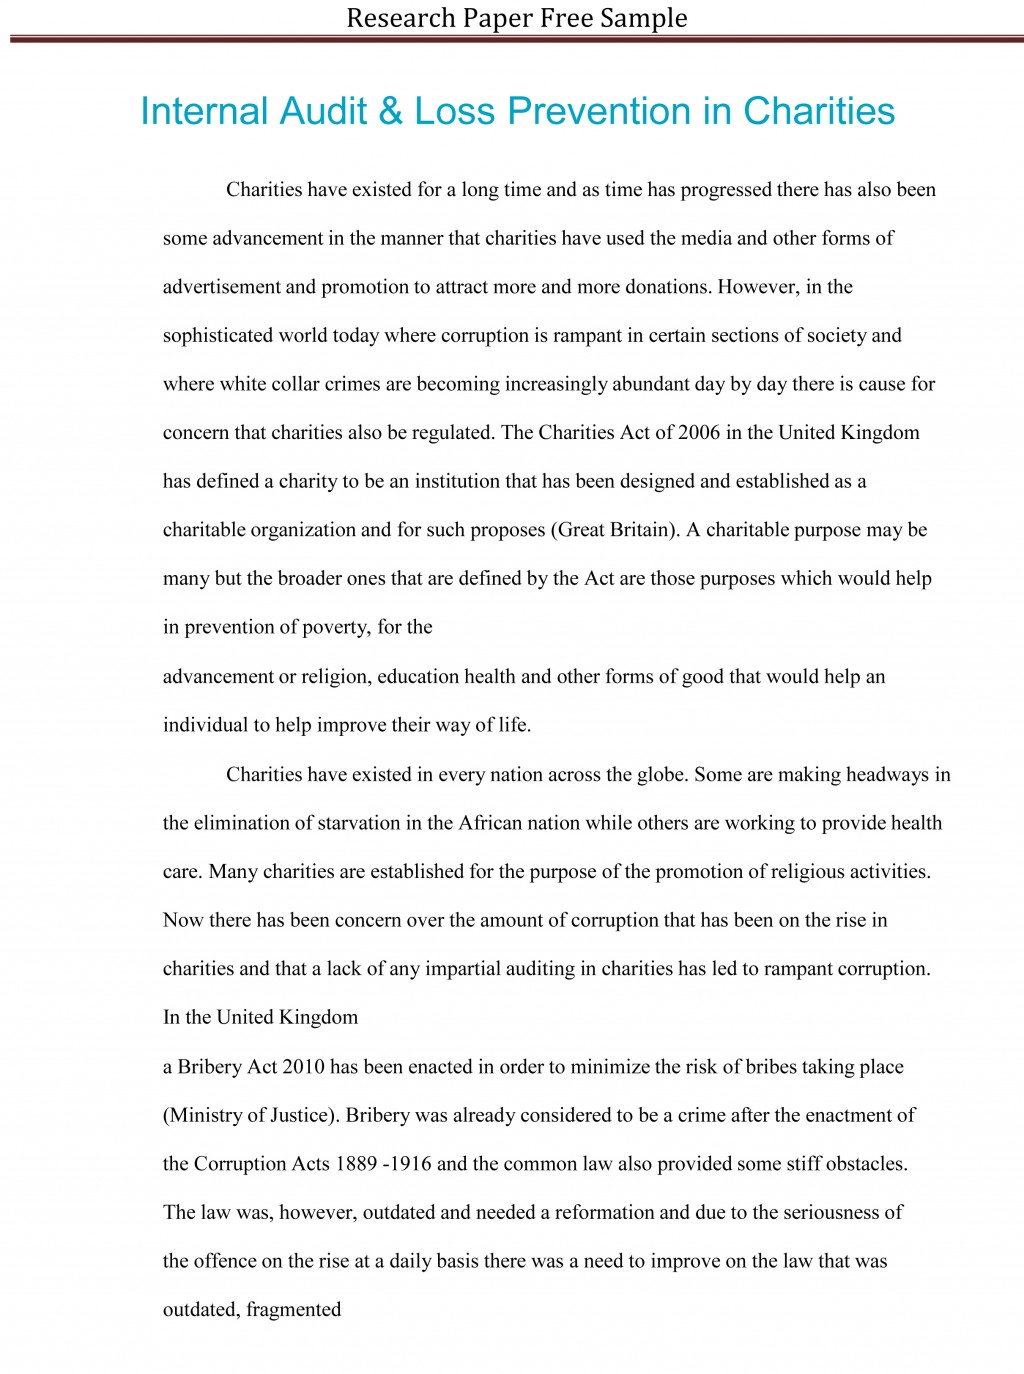 010 Writing An Introduction To Research Paper Help Paragraph Top A Intro Steps In Large